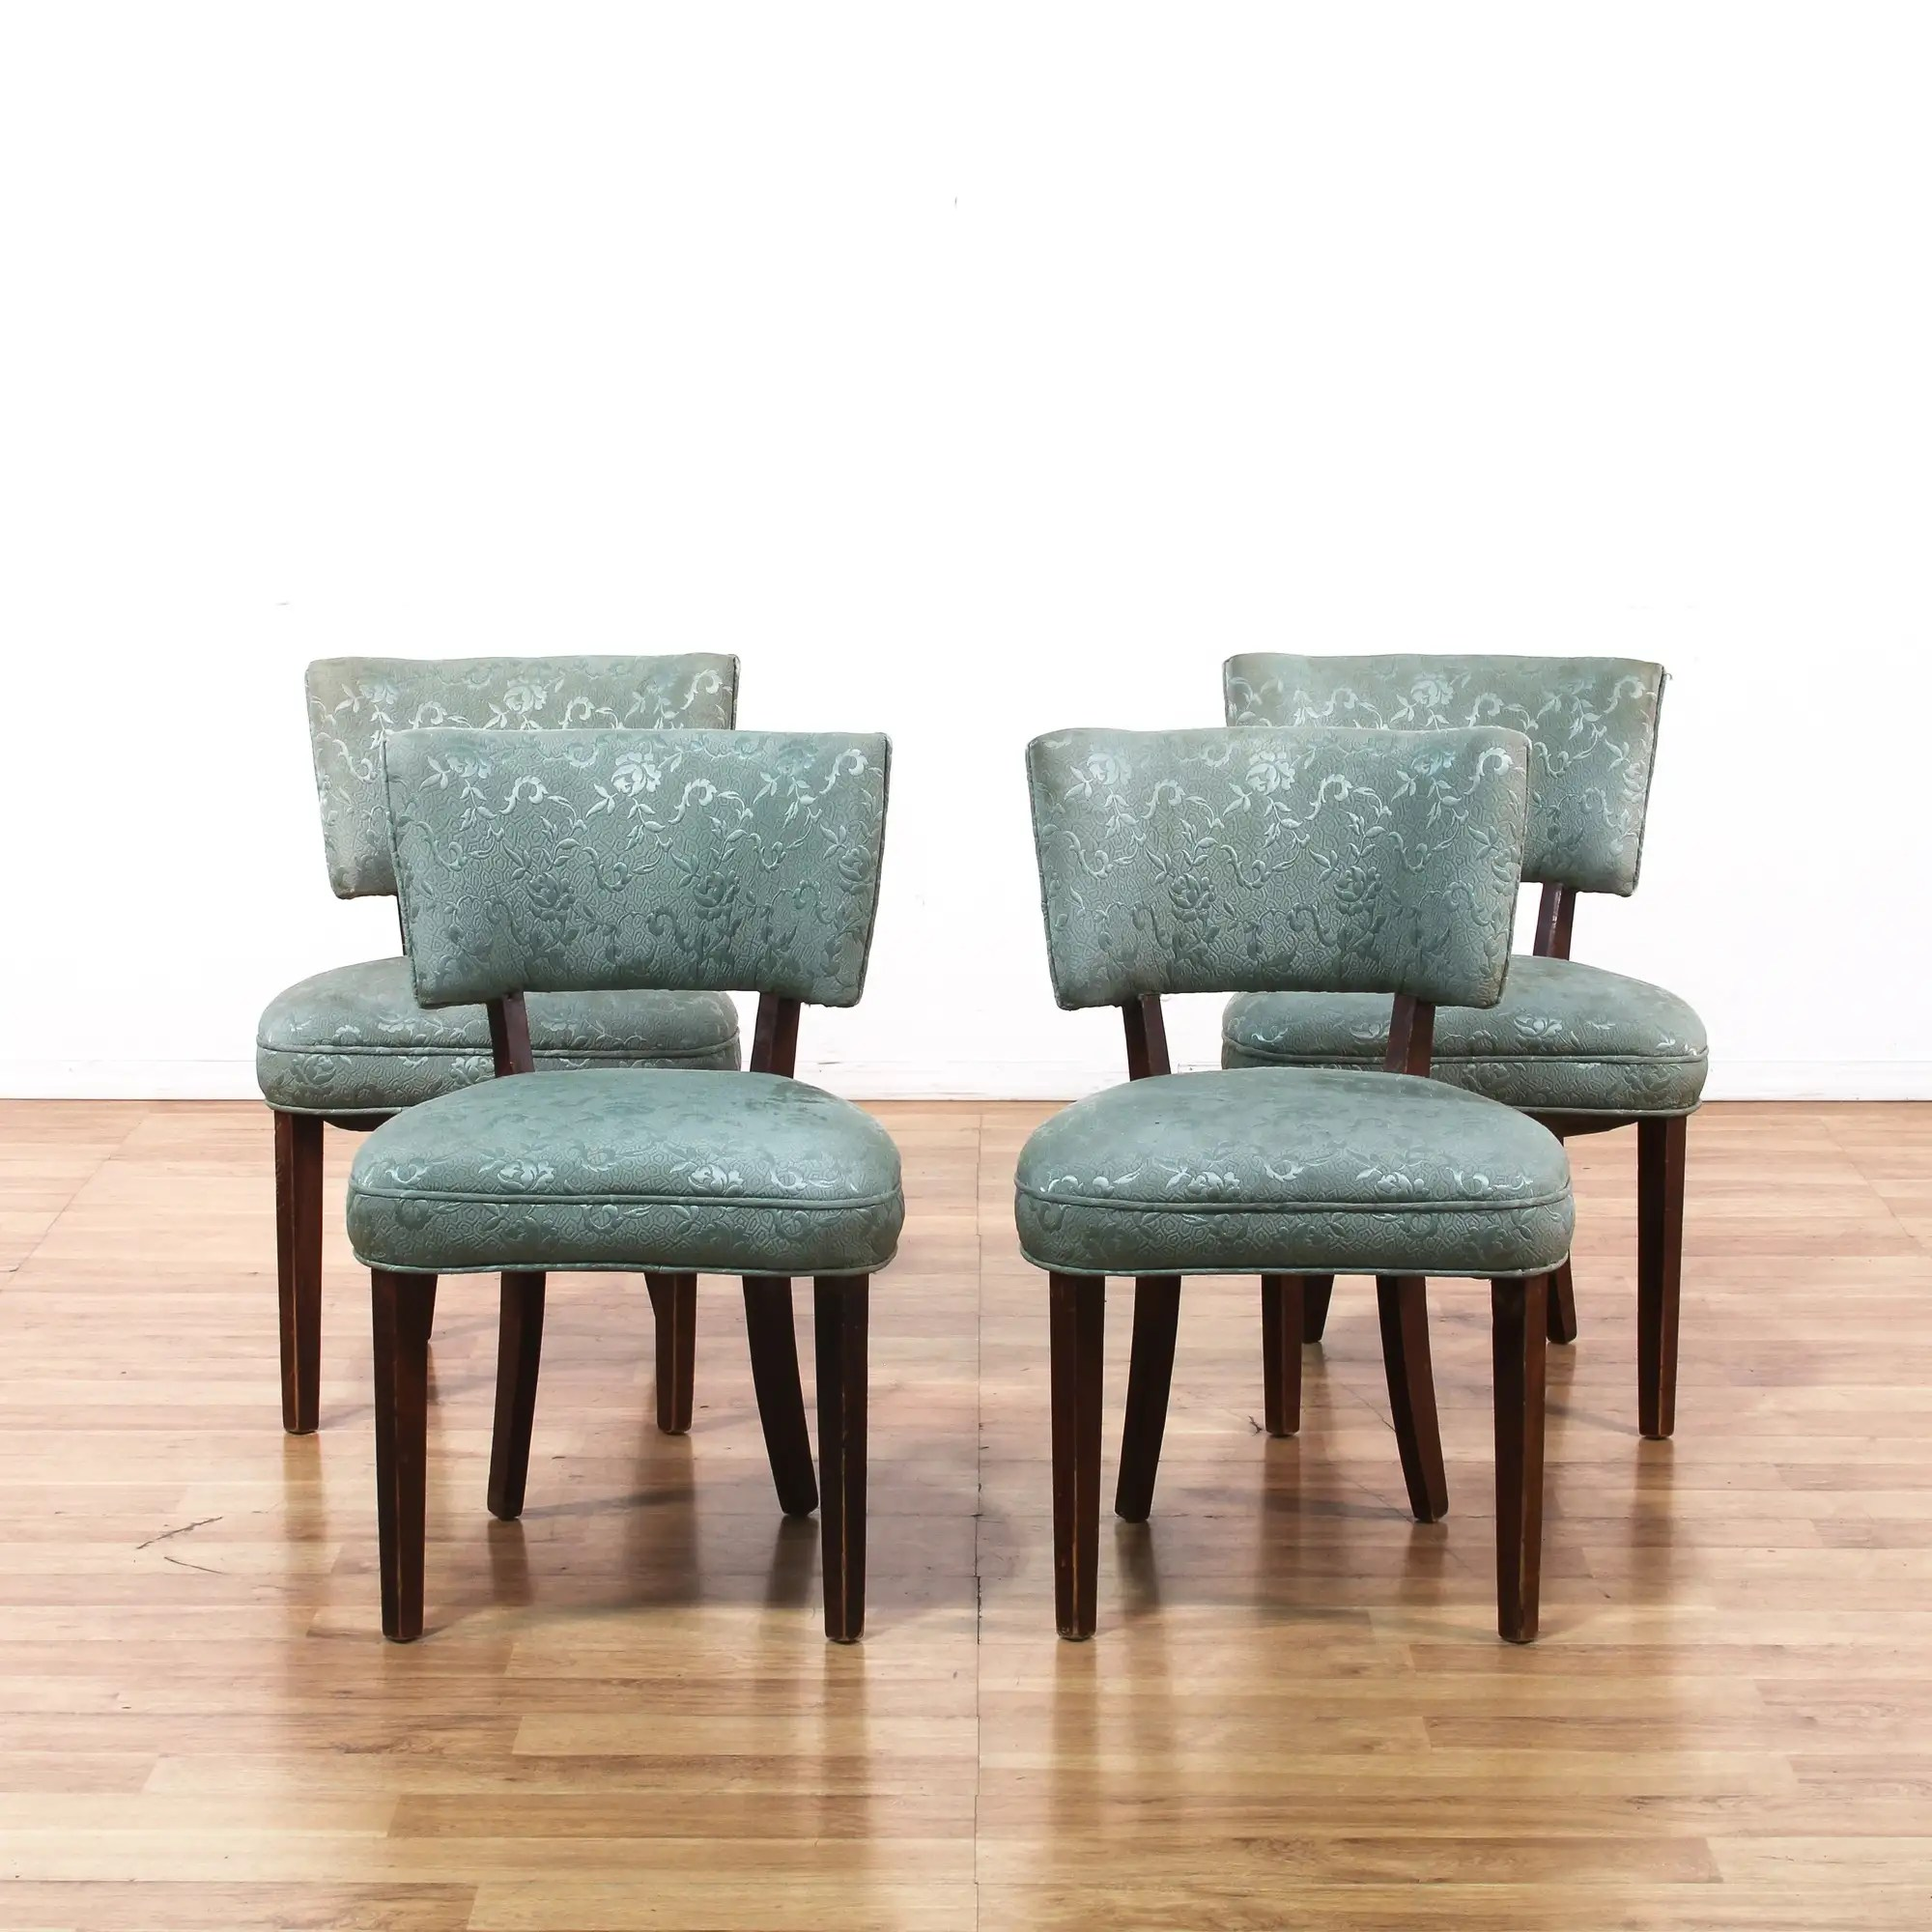 Set Of 4 Blue Floral Upholstered Dining Chairs Loveseat Online Auctions Los Angeles